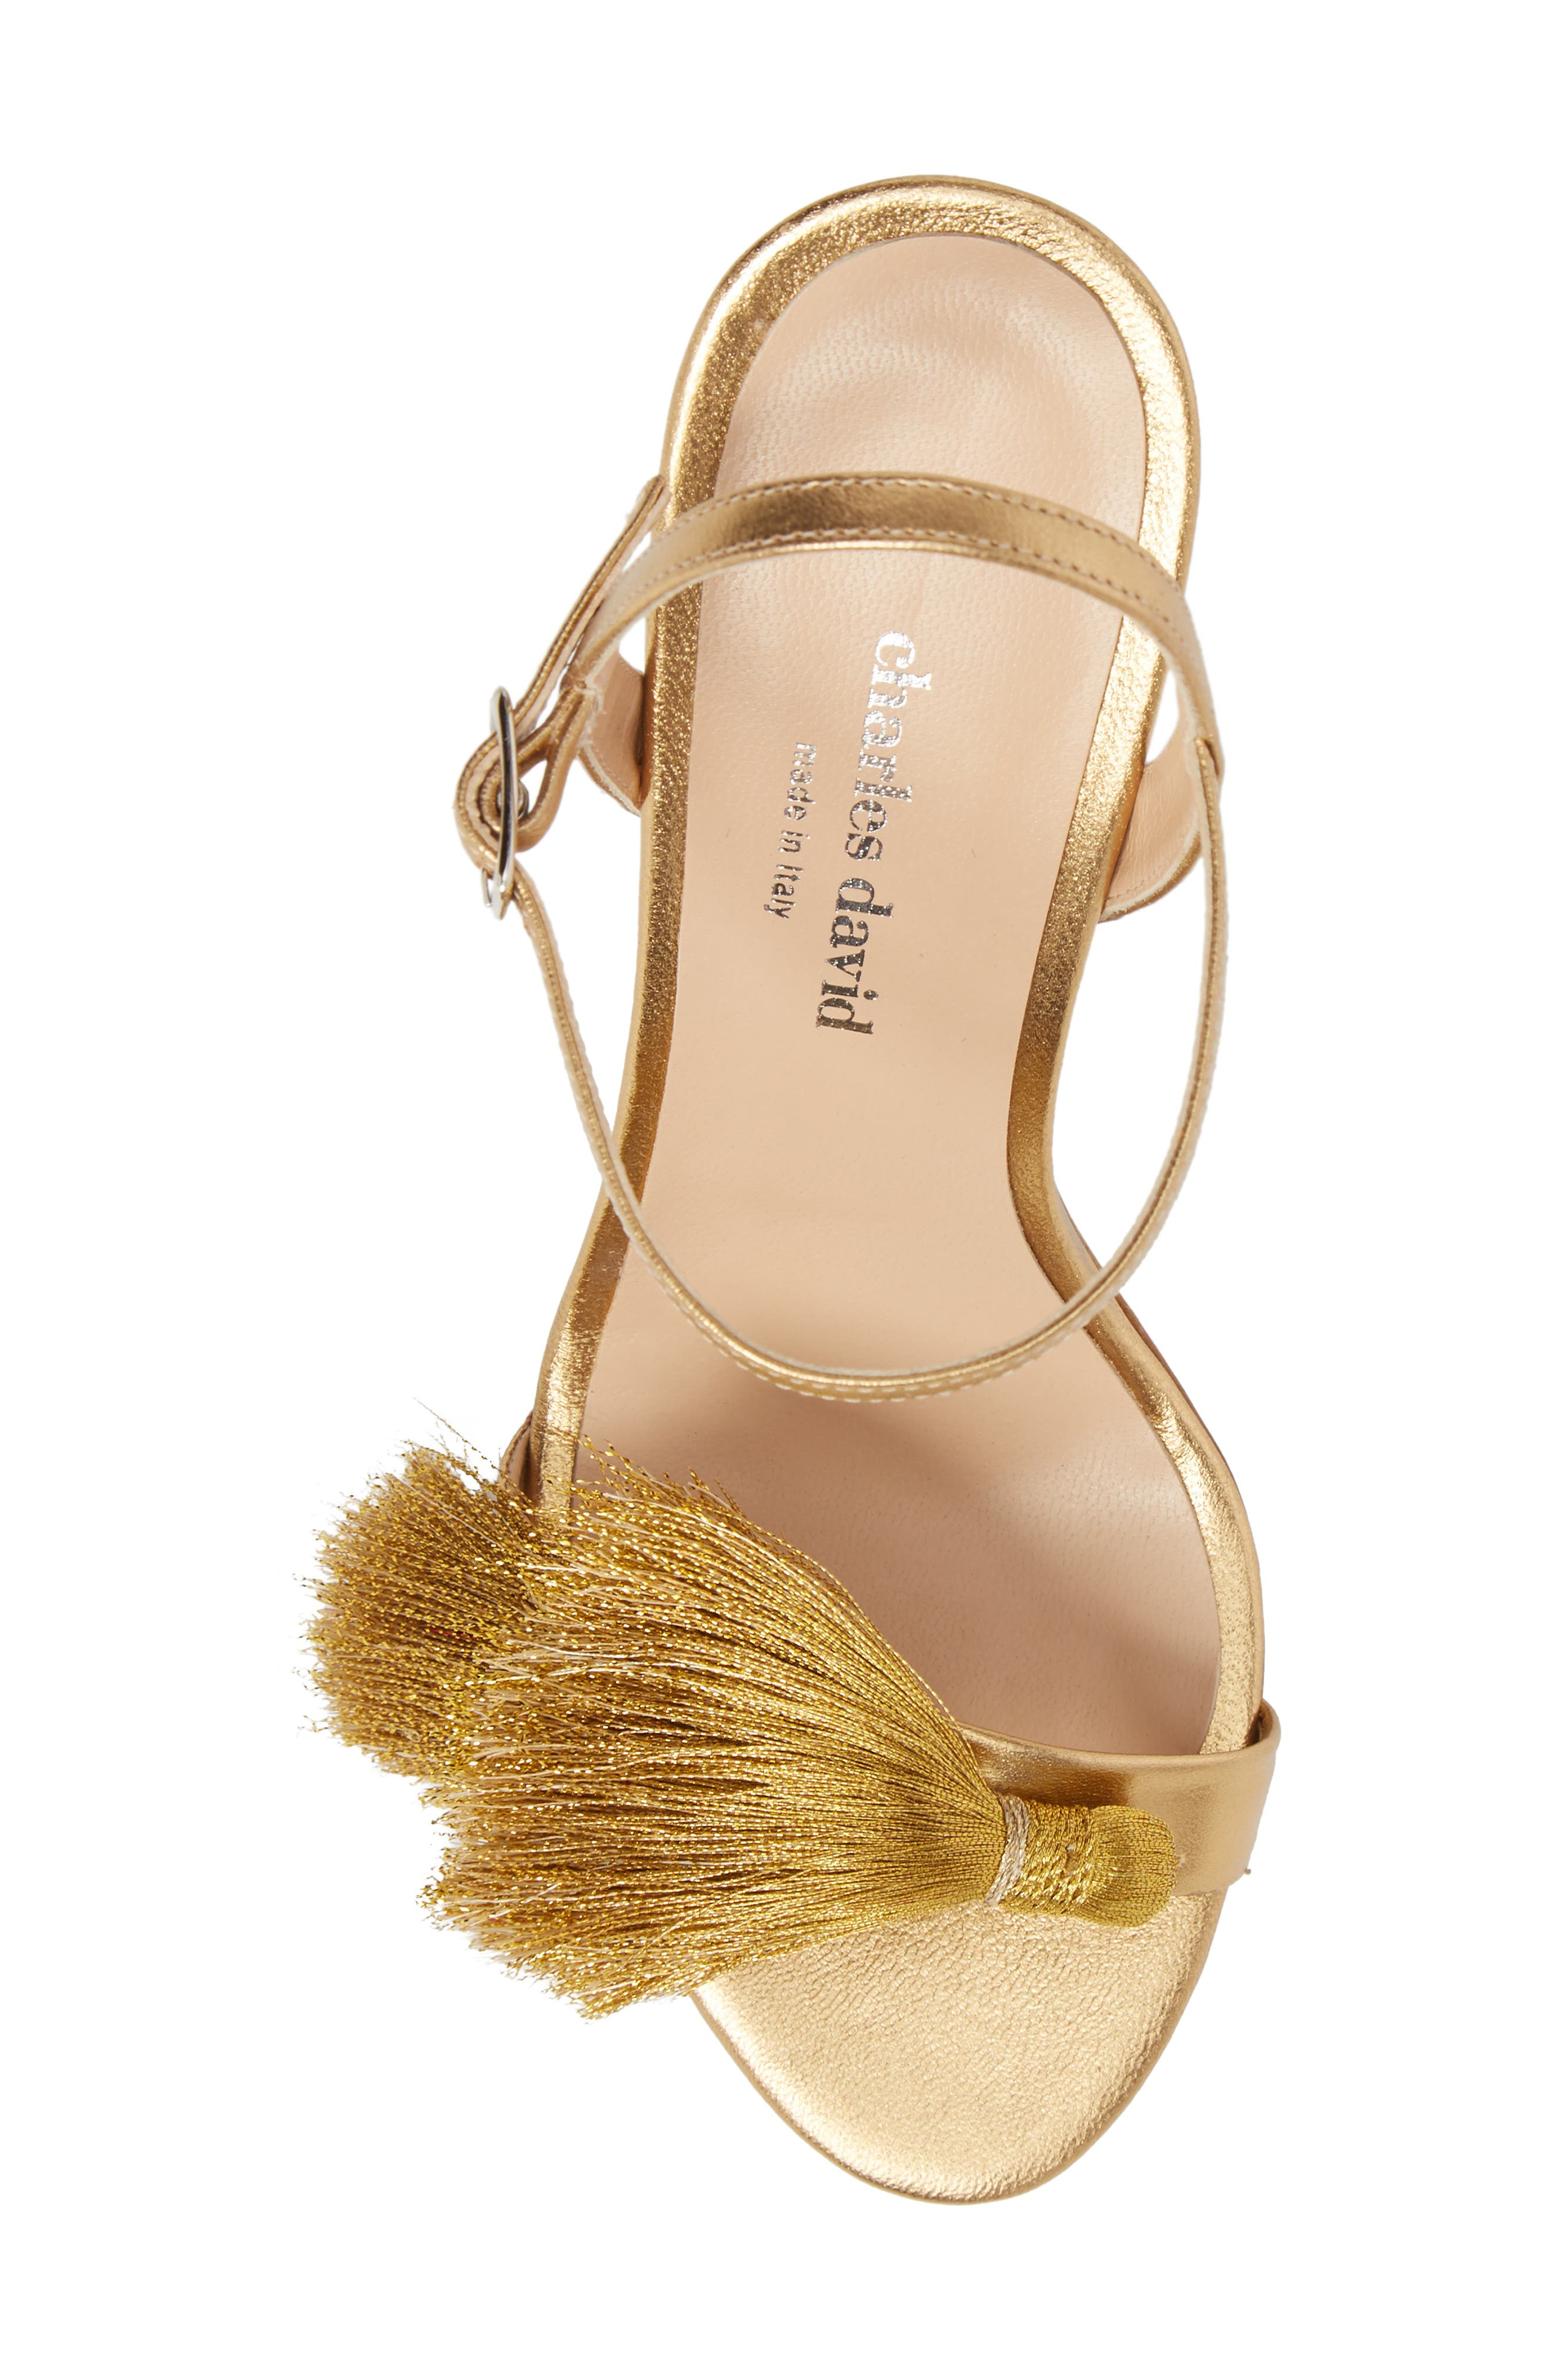 Sassy Tassel Sandal,                             Alternate thumbnail 5, color,                             GOLD LEATHER